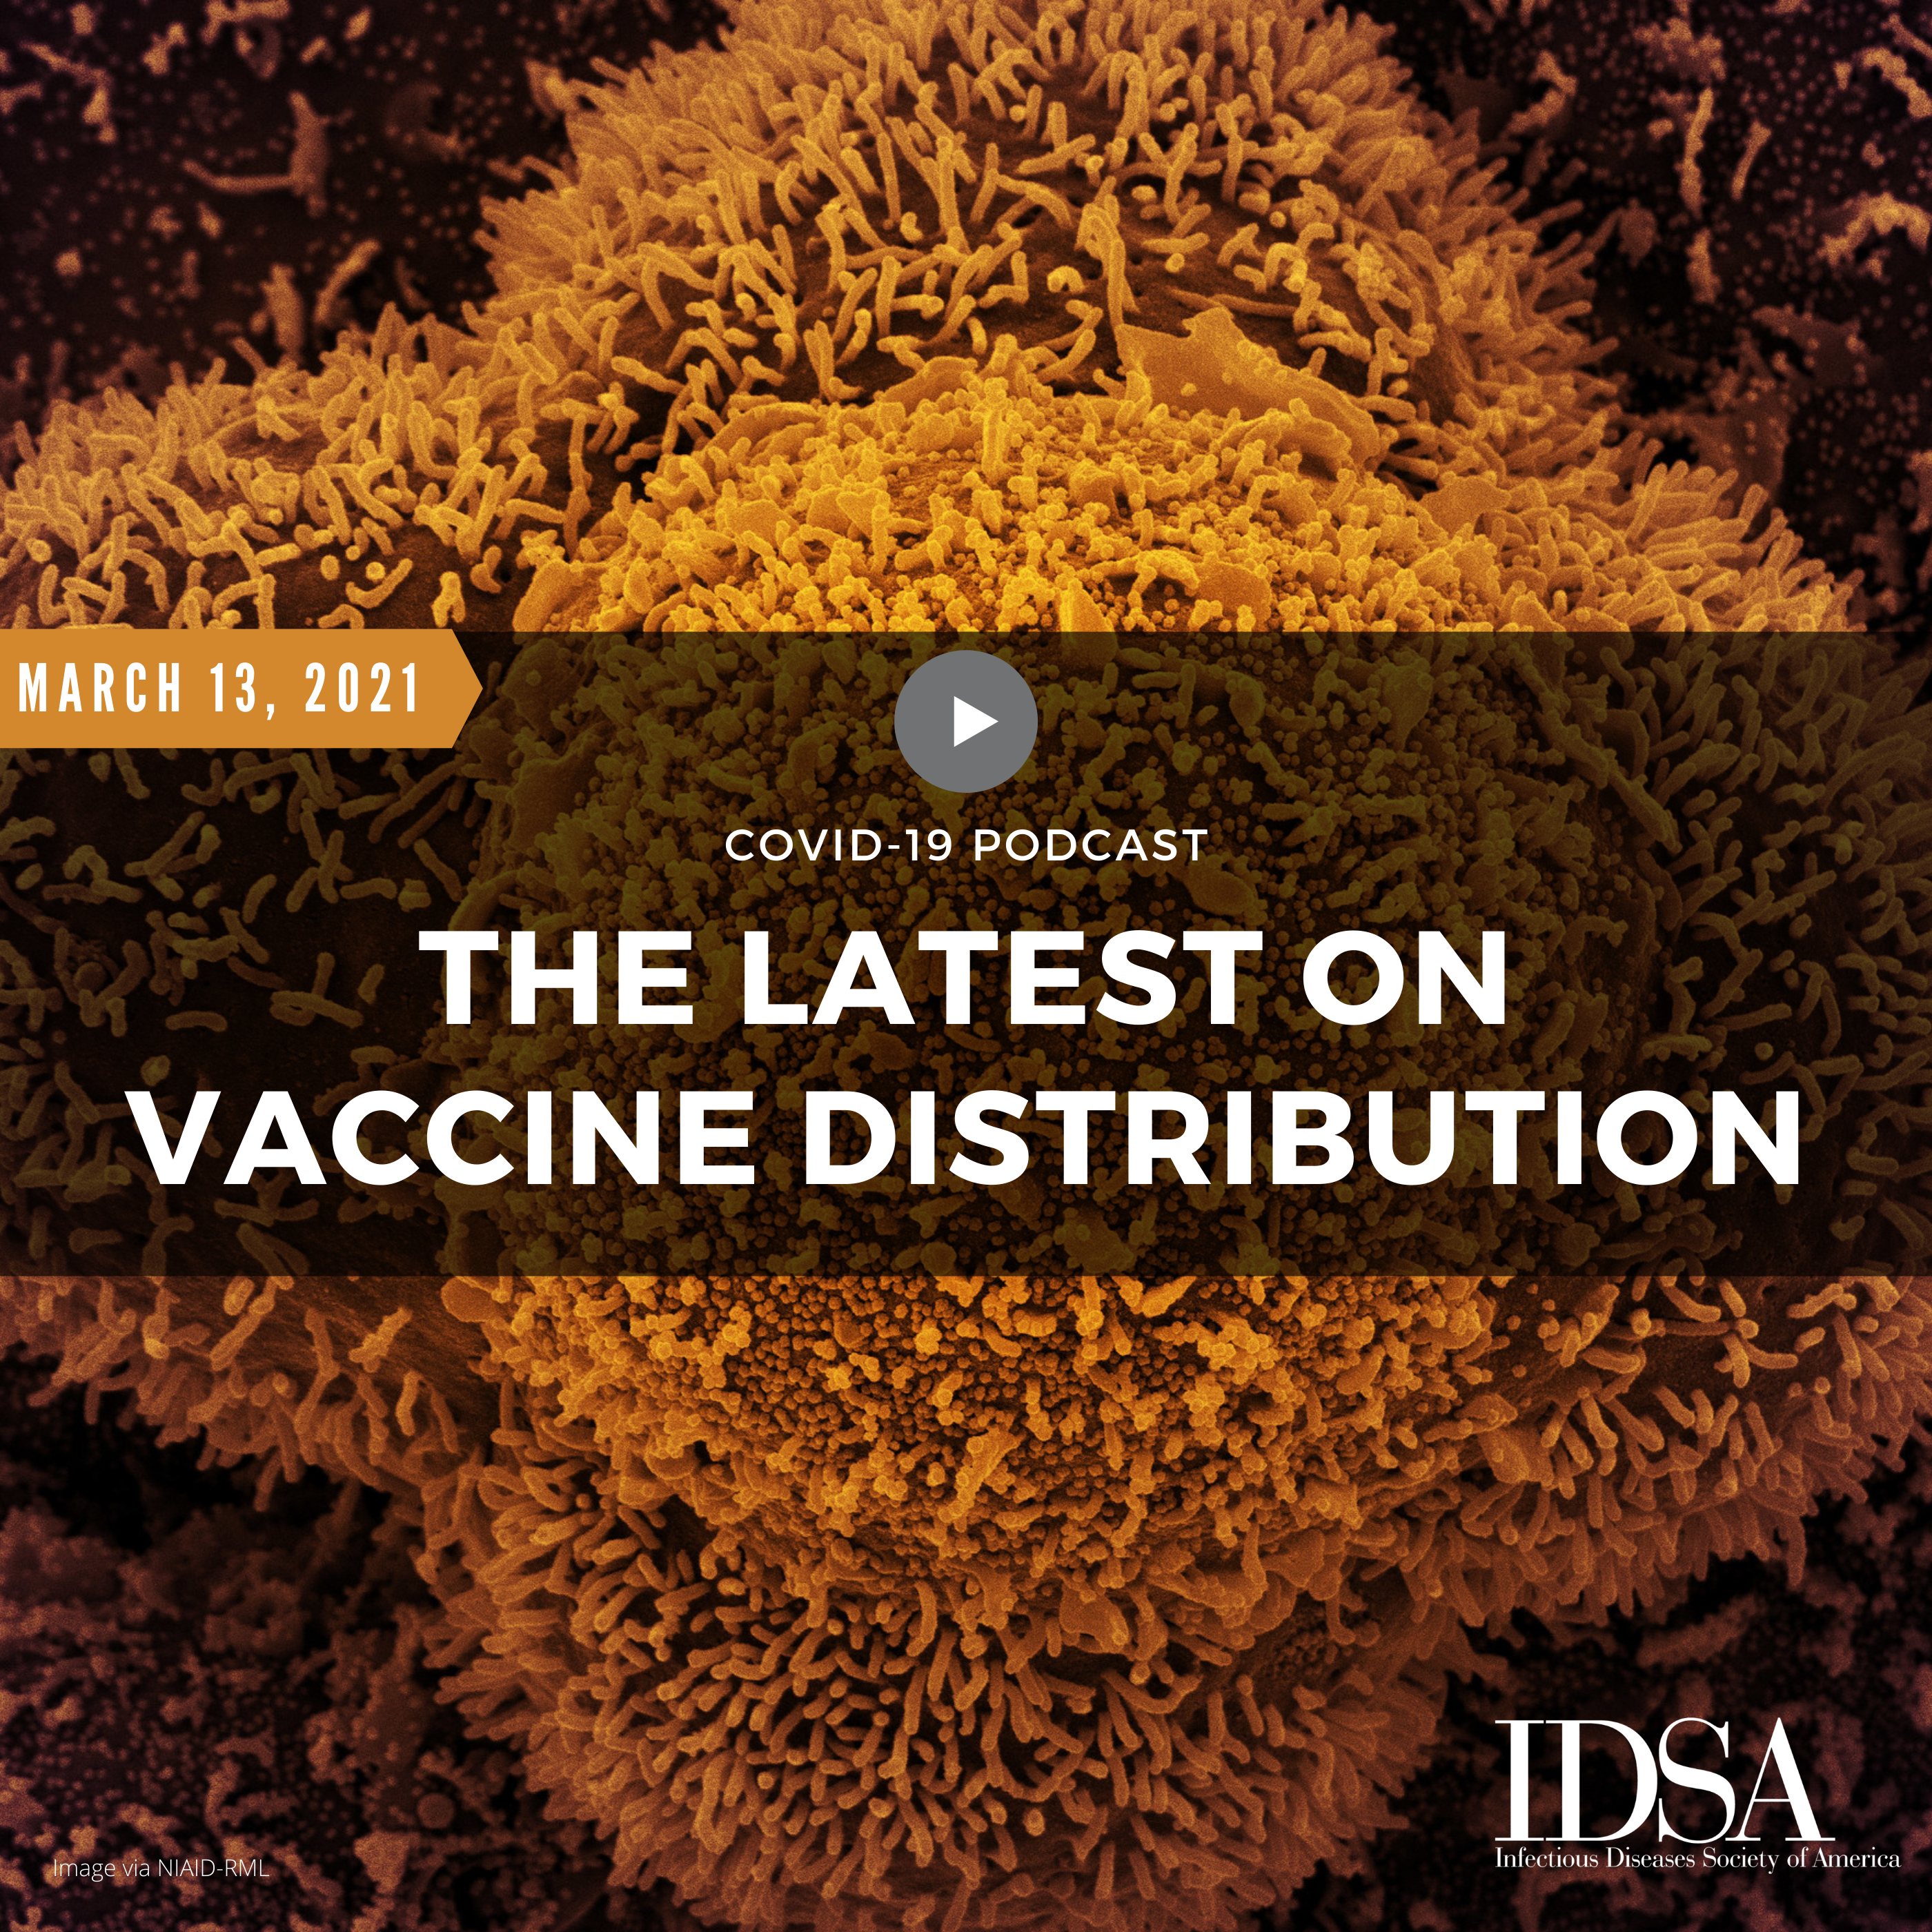 COVID-19: The Latest on Vaccine Distribution (March 13, 2021)